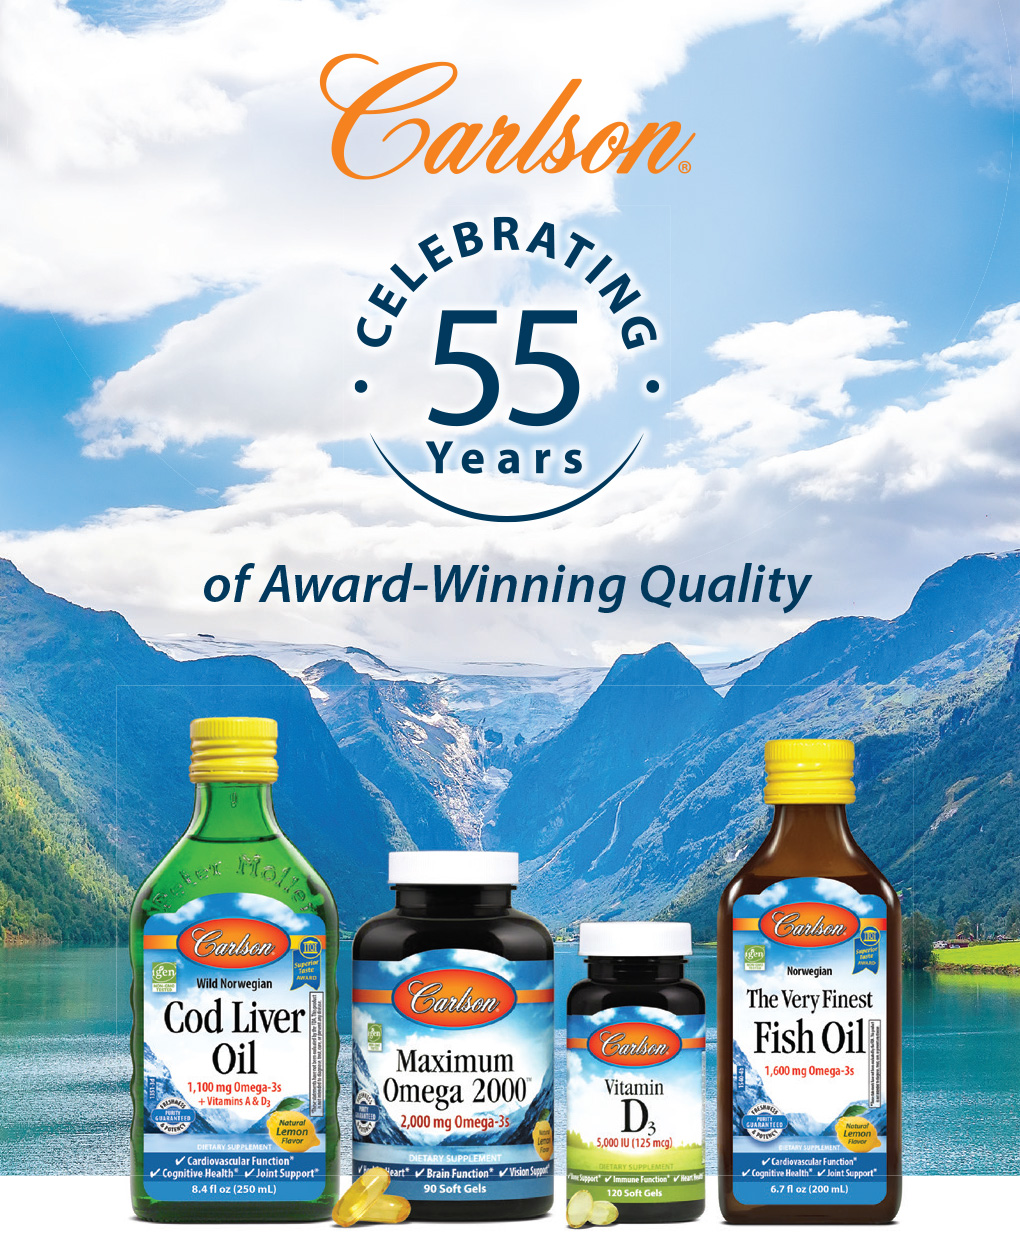 Carlson | Celebrating 55 Years of Award-Winning Quality